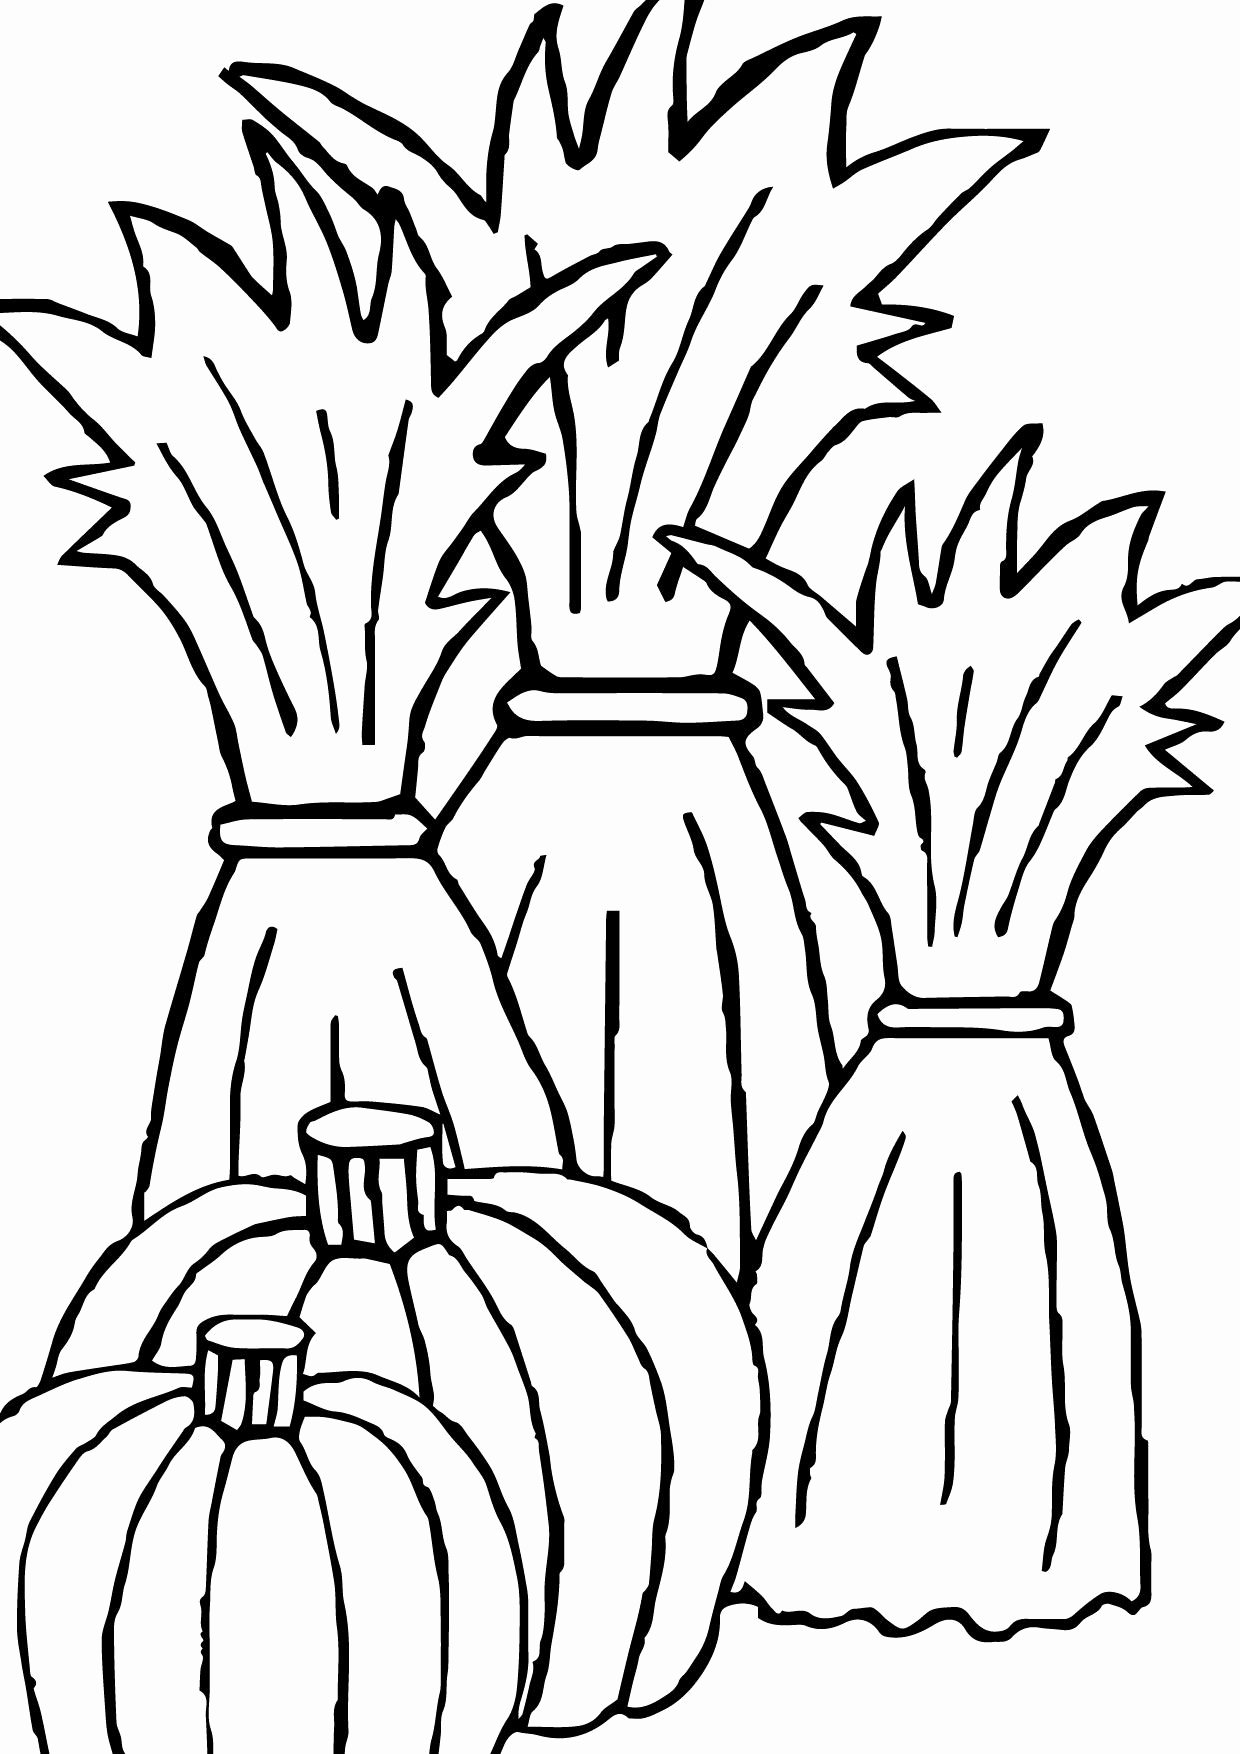 corn stalk coloring sheet corn plant drawing free download on clipartmag stalk corn coloring sheet